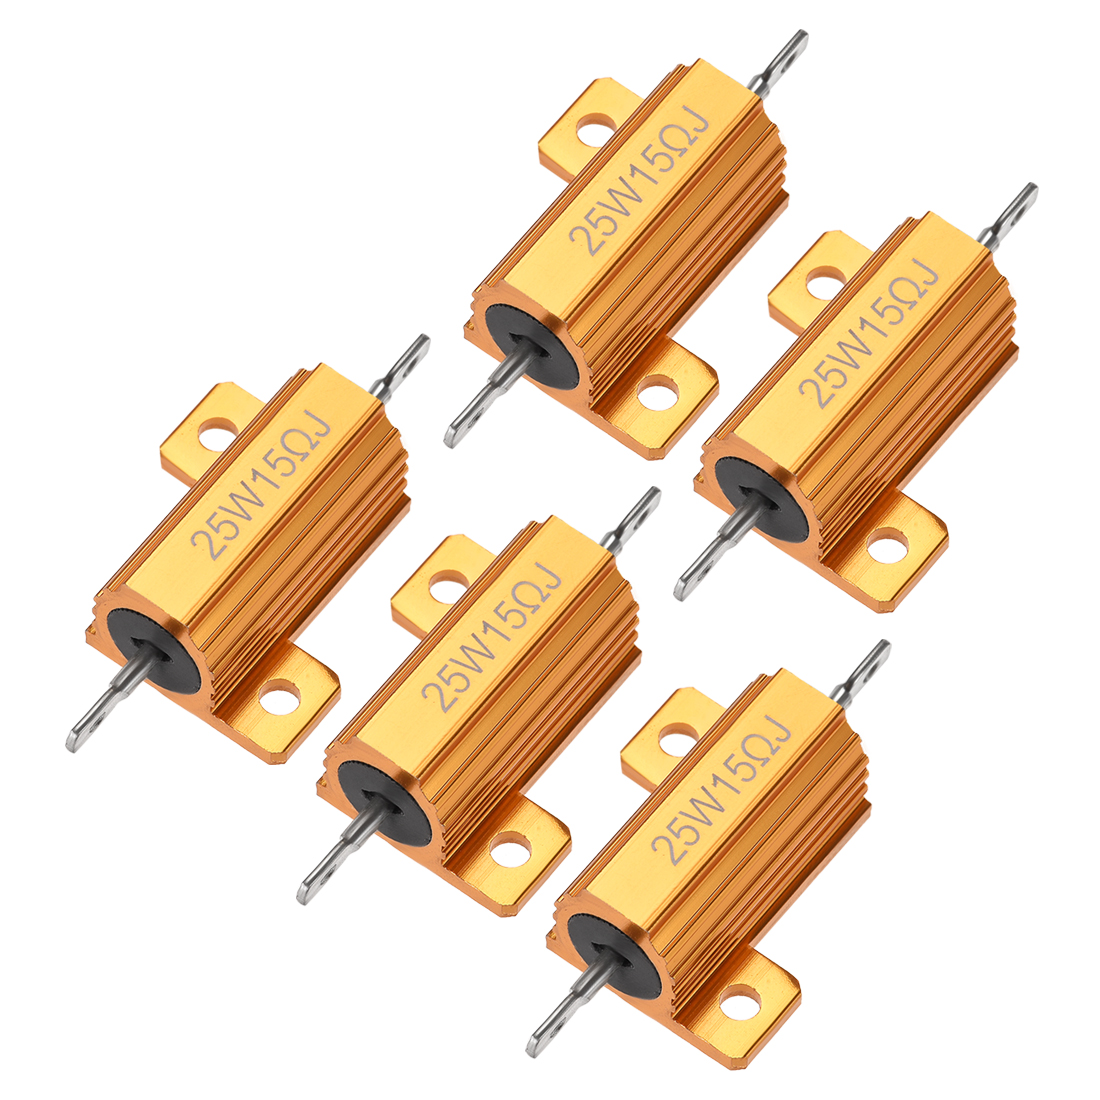 25W 15 Ohm 5% Aluminum Housing Resistor Wirewound Resistor Gold Tone 5 Pcs